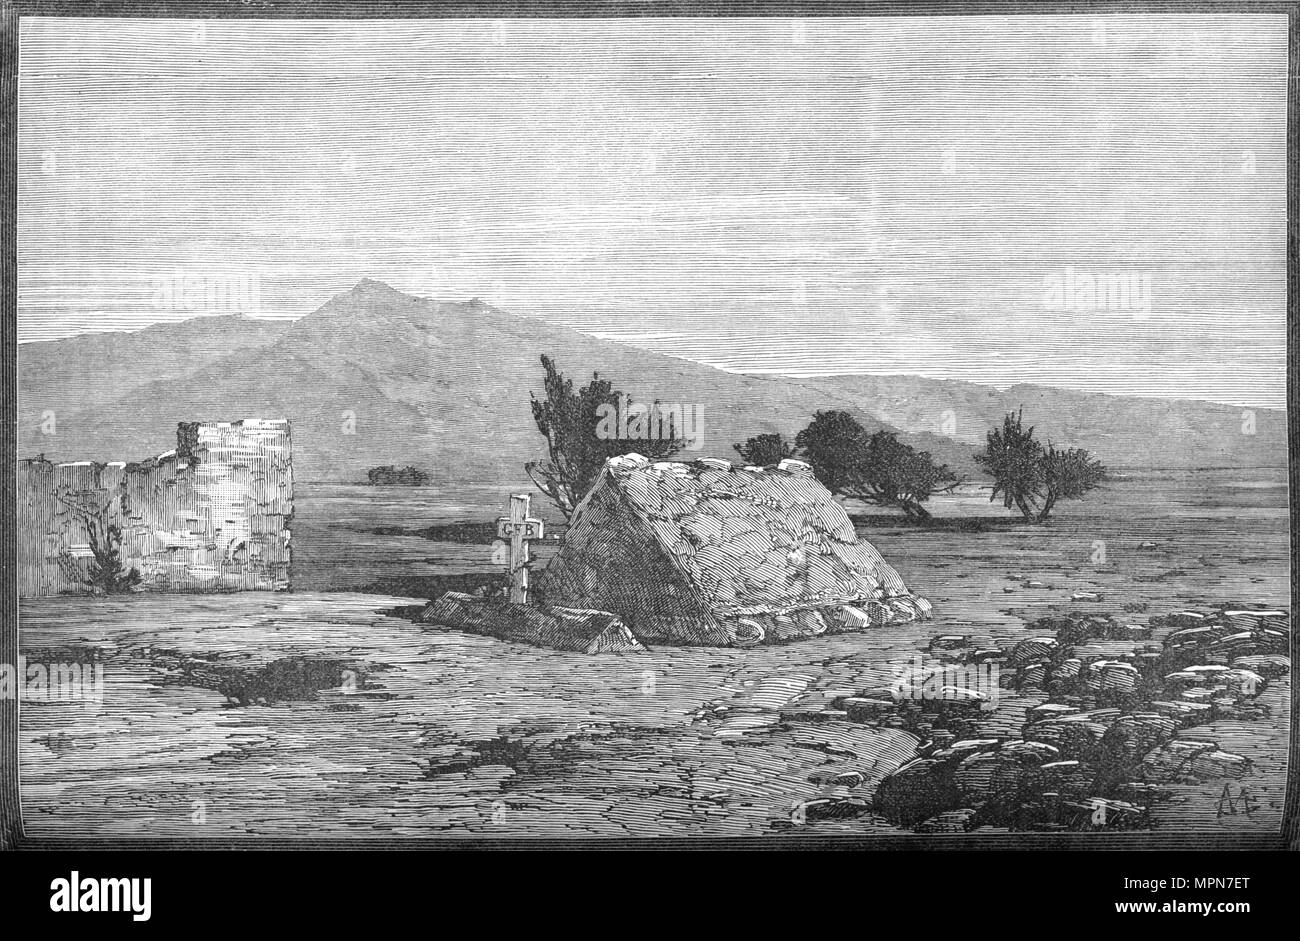 'Graves of Major Blackwood and Men of the Sixty-Sixth Regiment, Maiwand', c1880. Artist: Unknown. - Stock Image